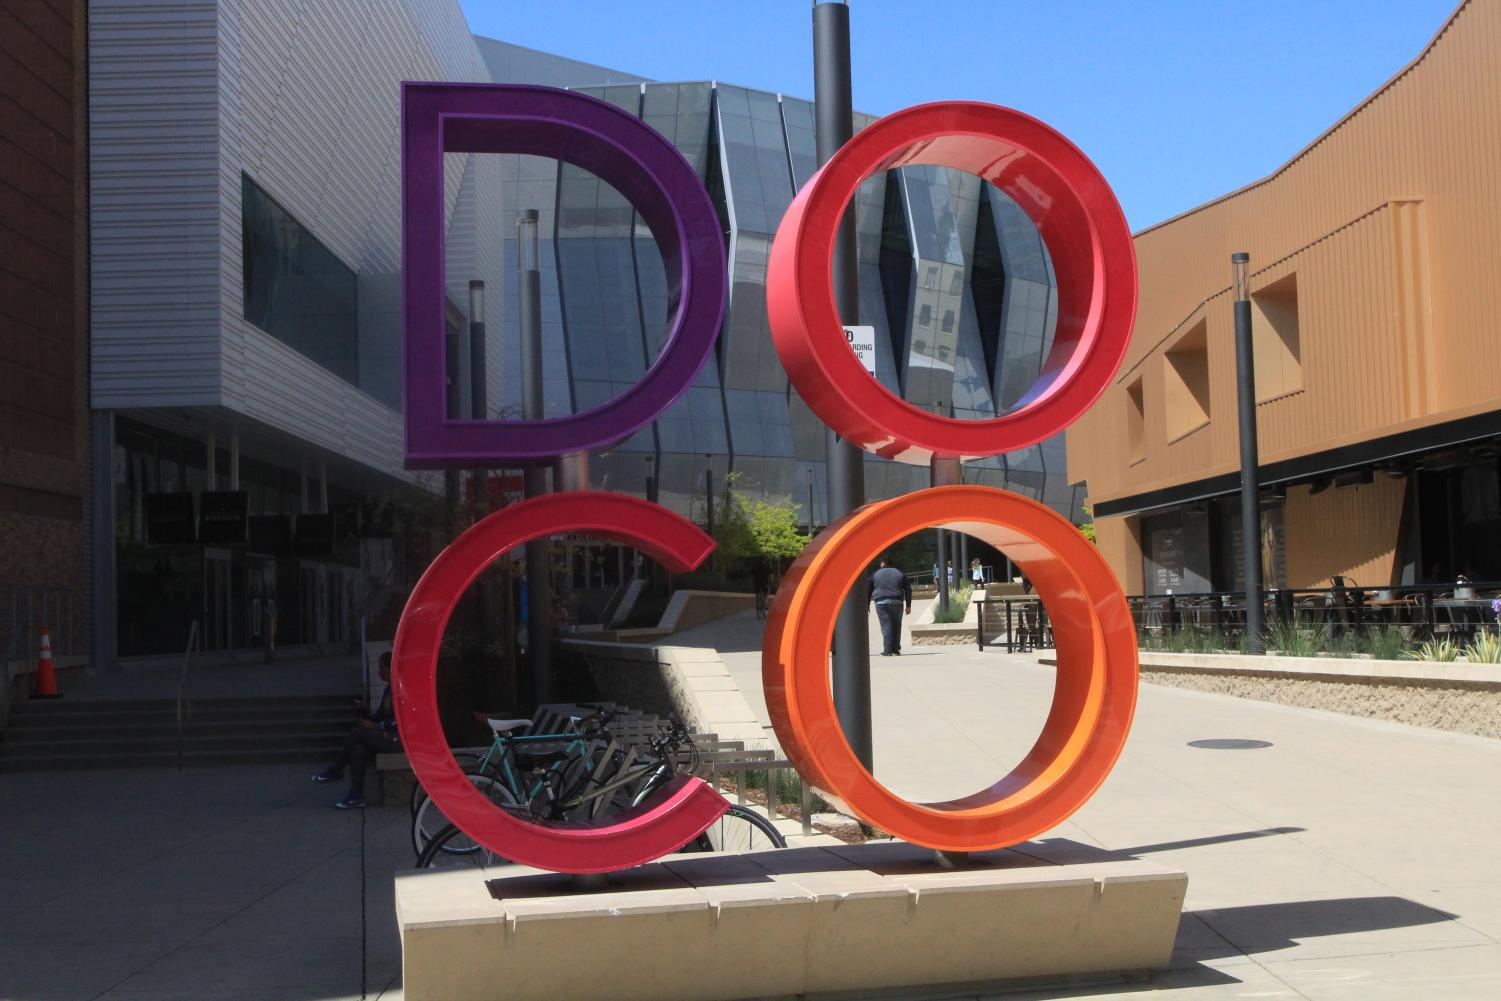 A sign promoting Downtown Commons is displayed outside Golden 1 Center. Since the arena opened in 2016, DOCO has become one of the hottest new developments in Sacramento.